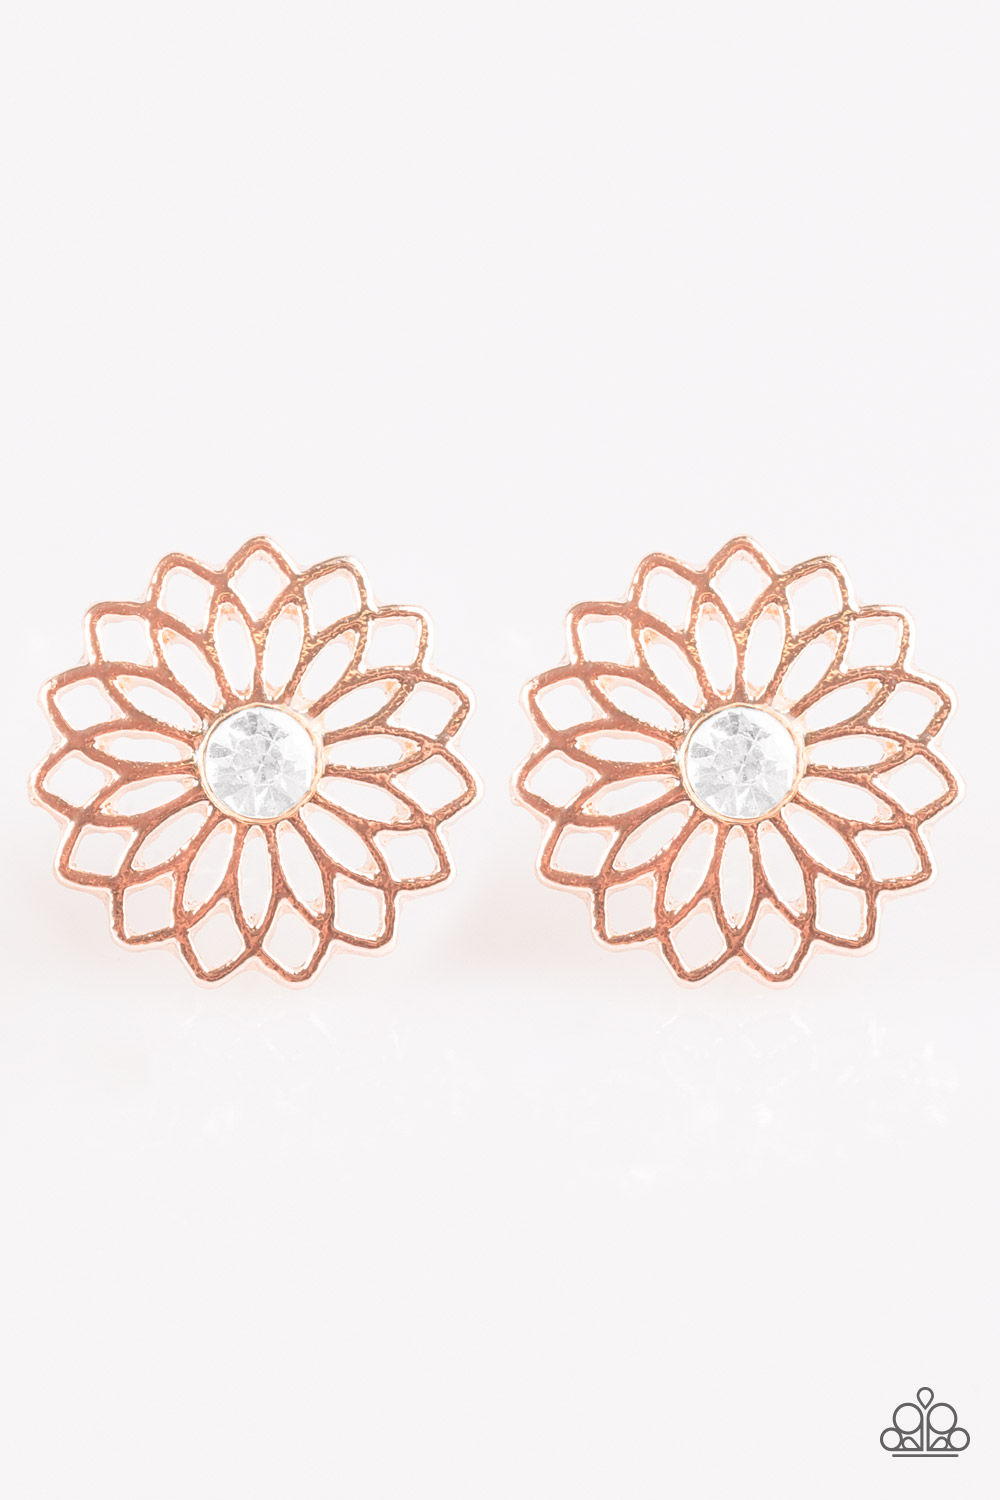 Paparazzi Accessories: Floral Fleek - Rose Gold Post